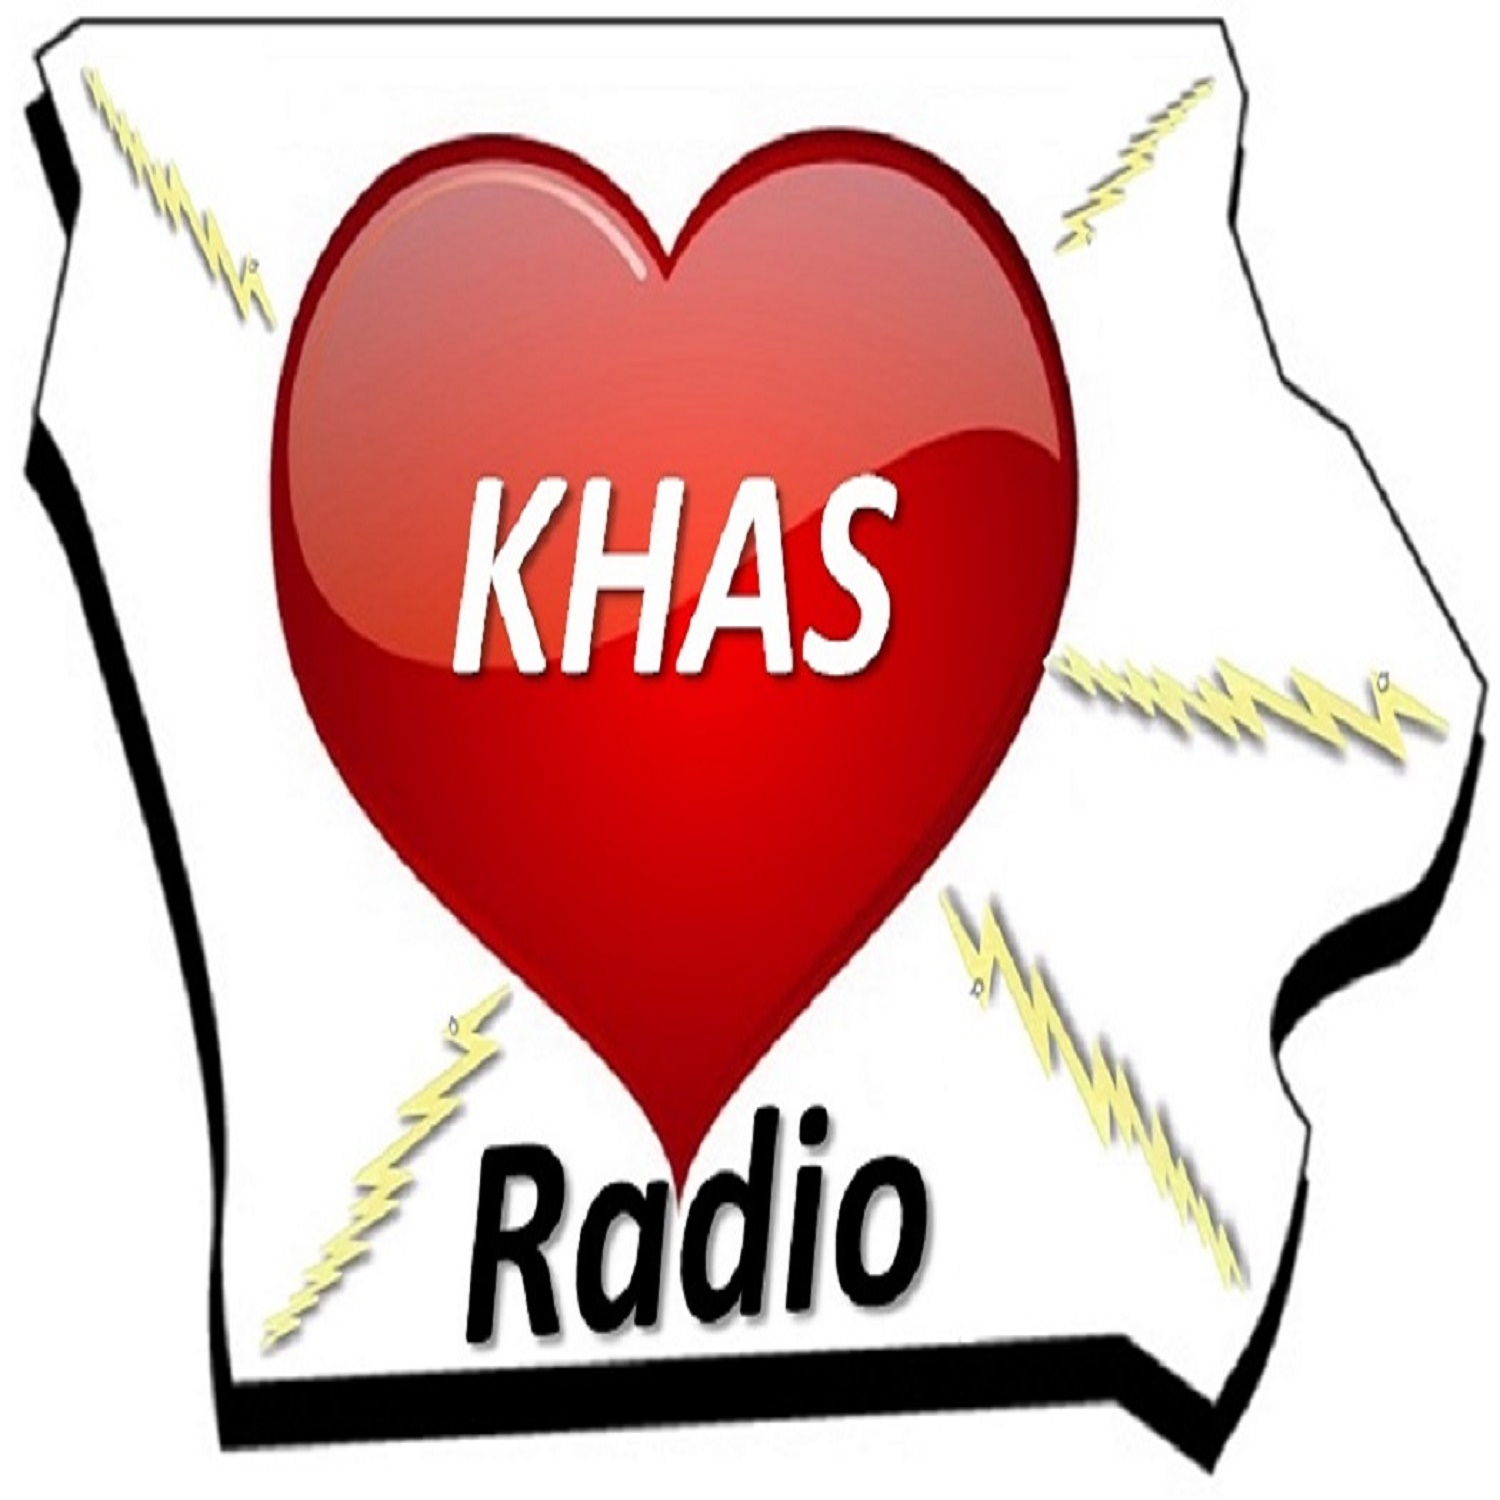 KHAS Radio Podcast - The Heart and Soul of Iowa Community Podcast Media